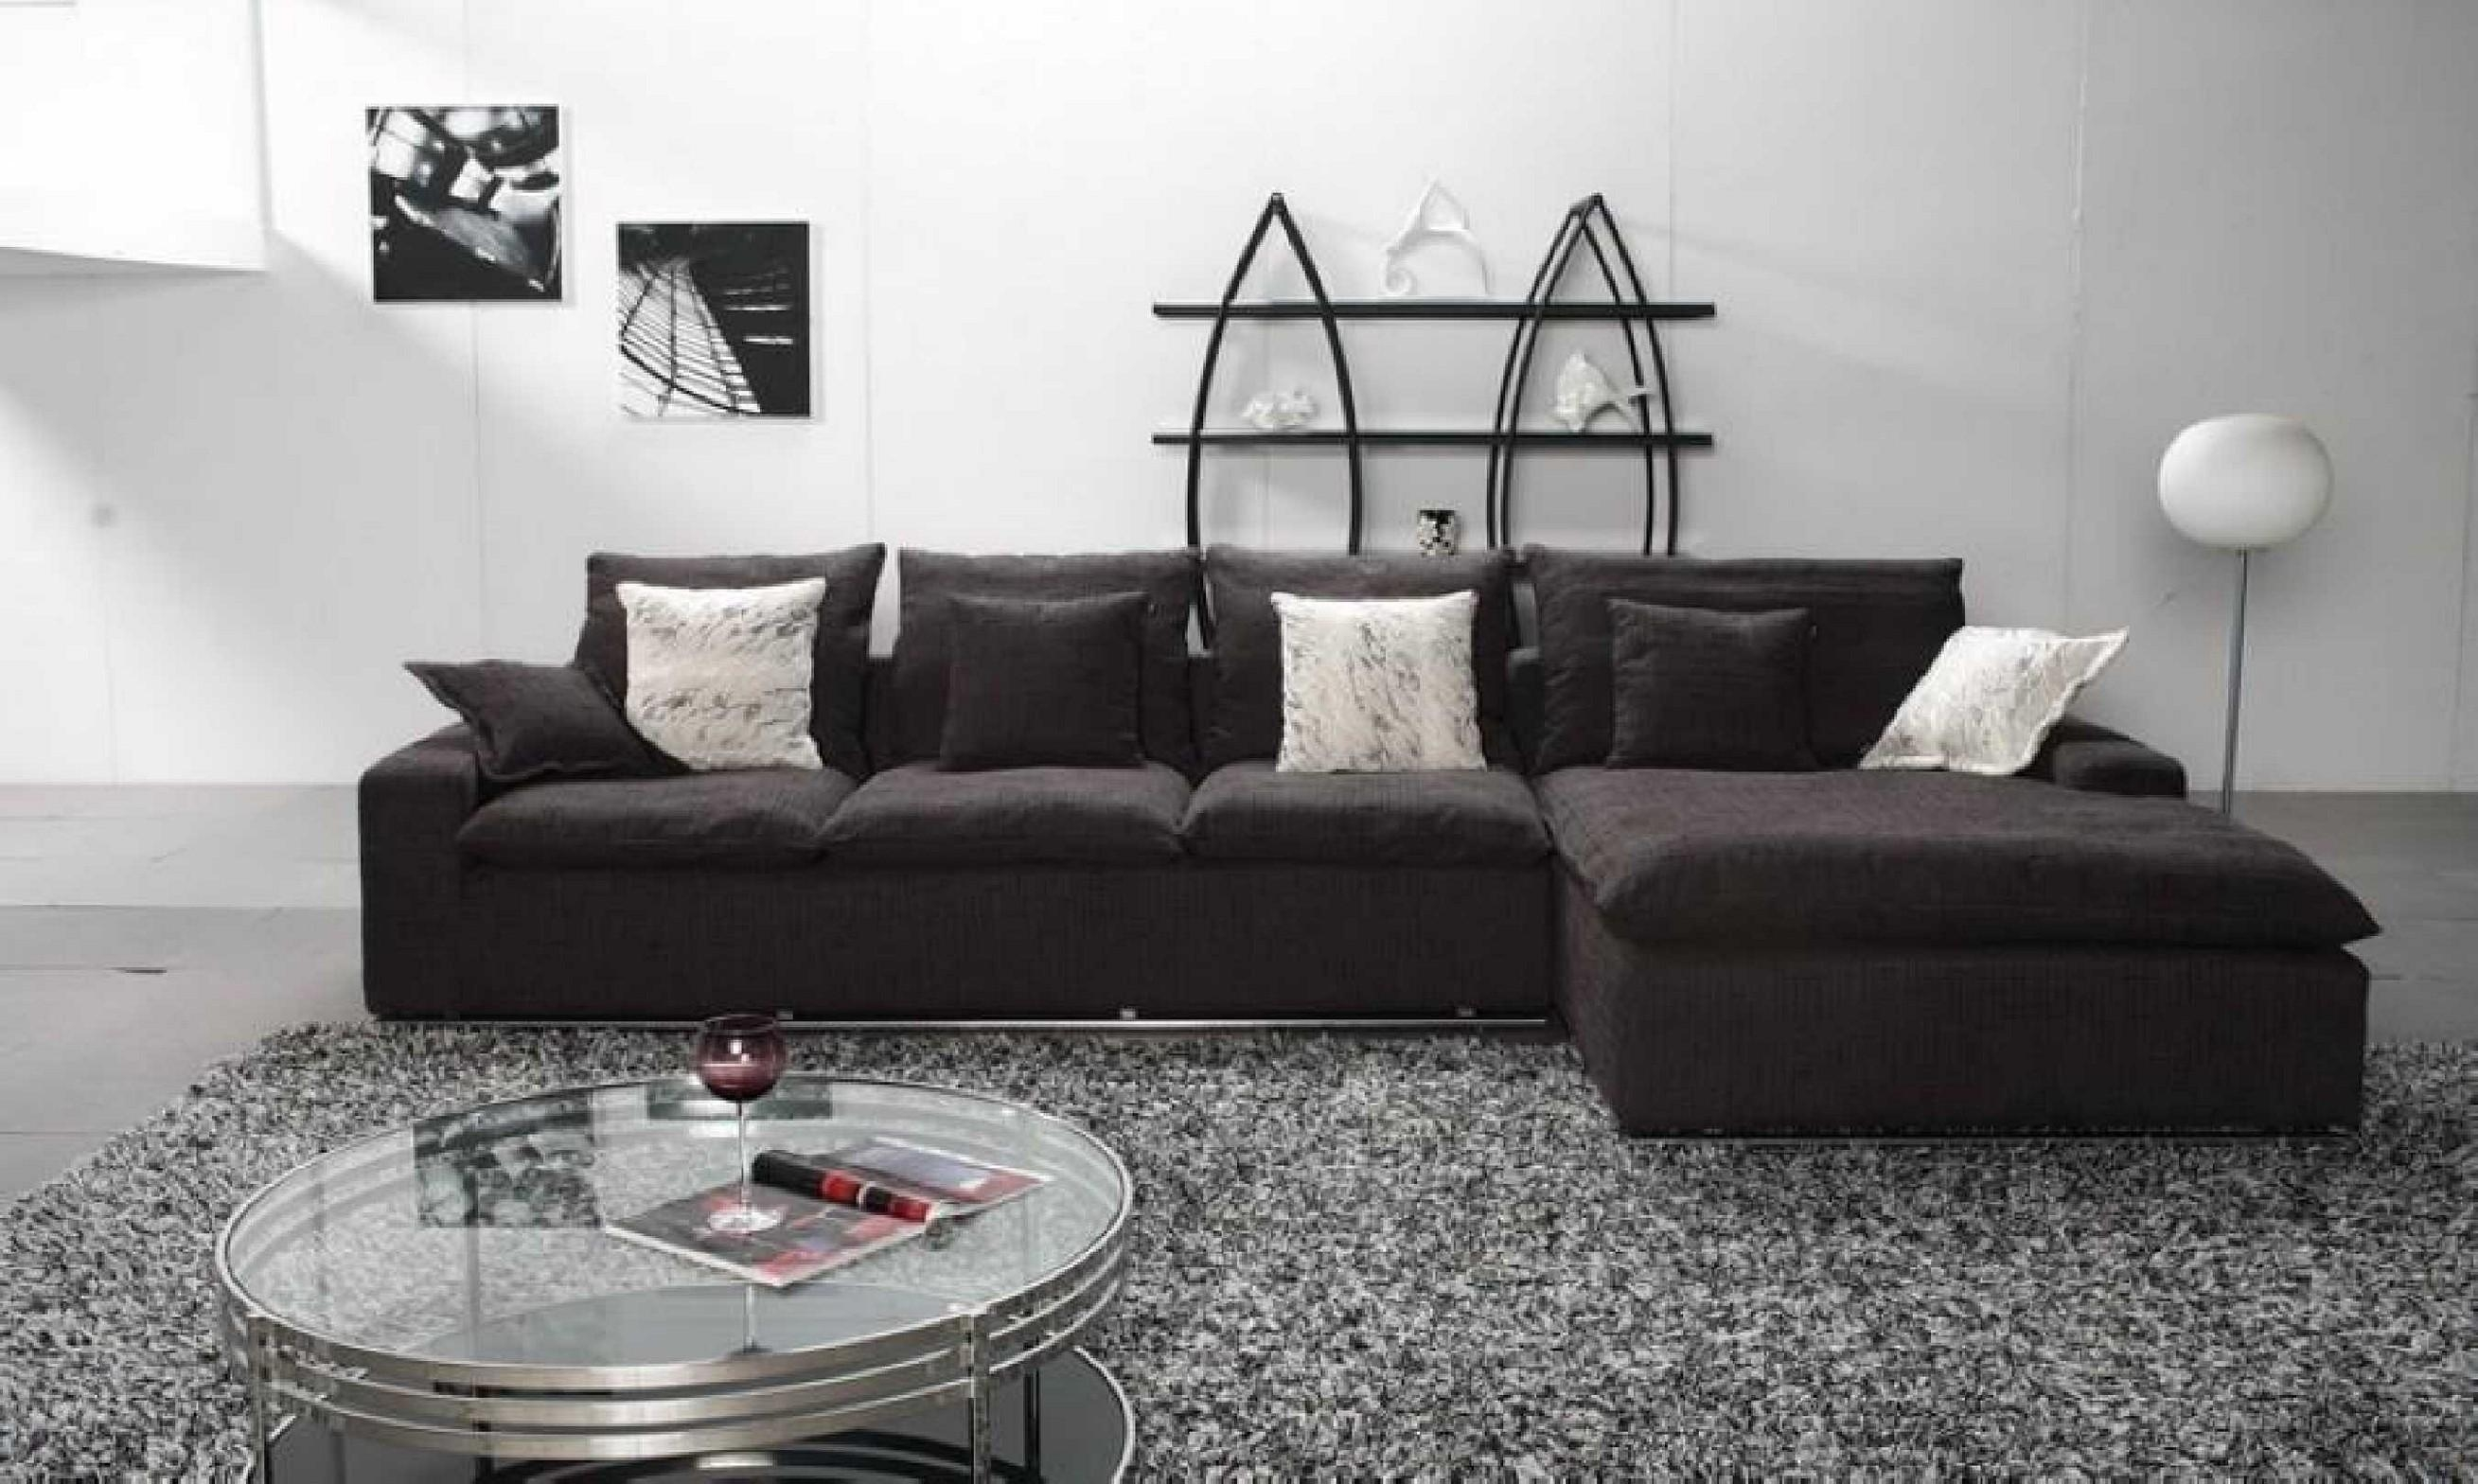 Comfortable Sectional Sofa Bed | Tehranmix Decoration Intended For Most Comfortable Sofabed (Image 3 of 22)